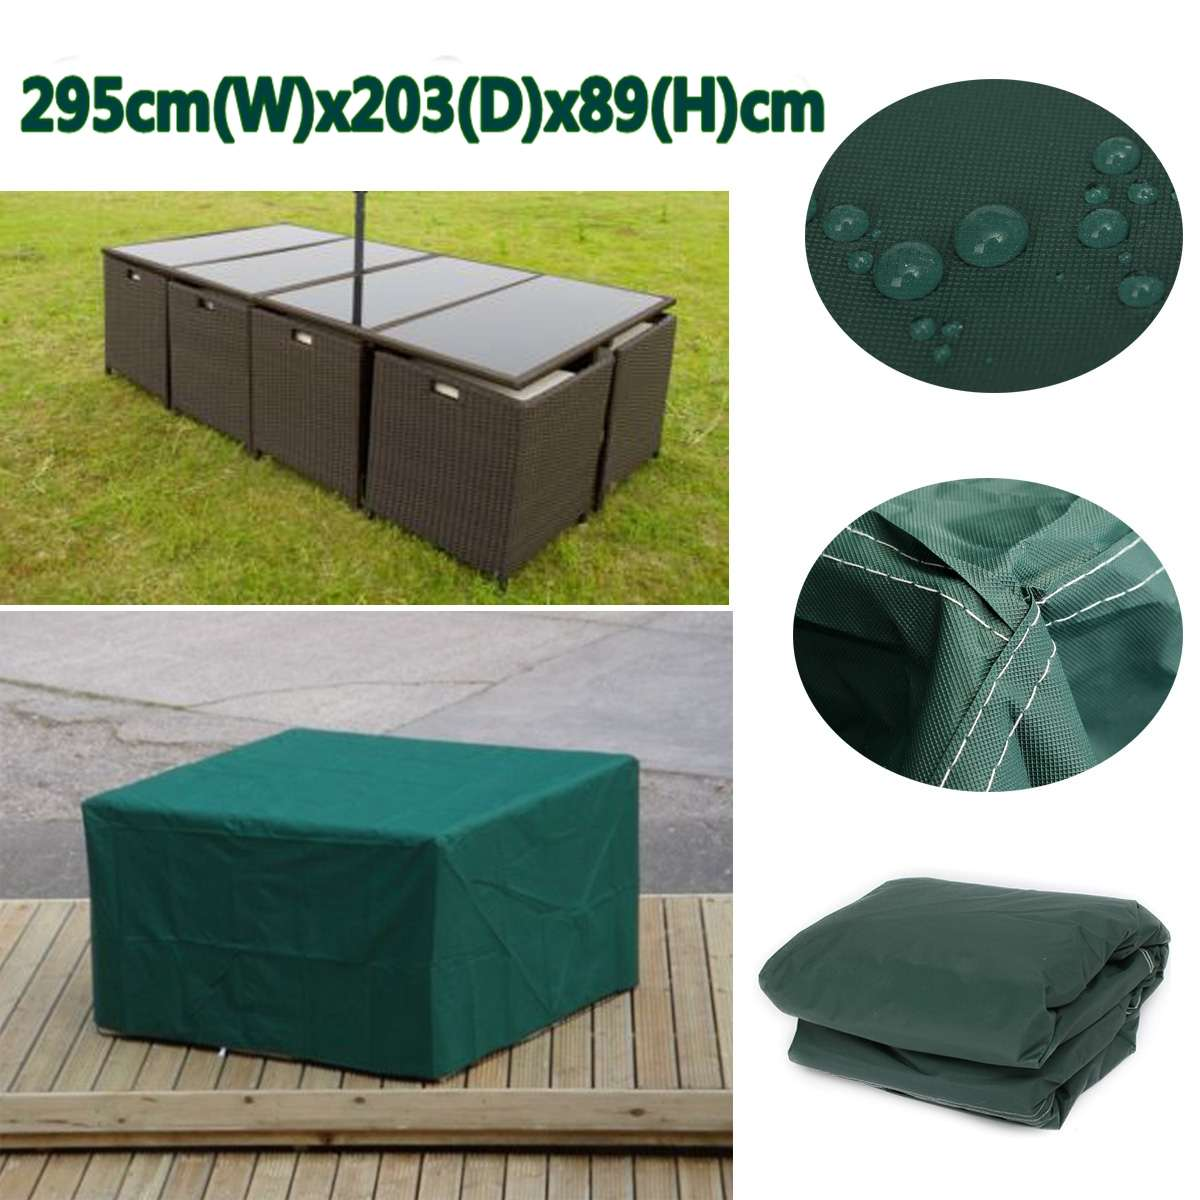 295x203x89cm Waterproof Garden Outdoor Furniture Dust Cover Breathable Table Shelter Green 210D Woven Polyester